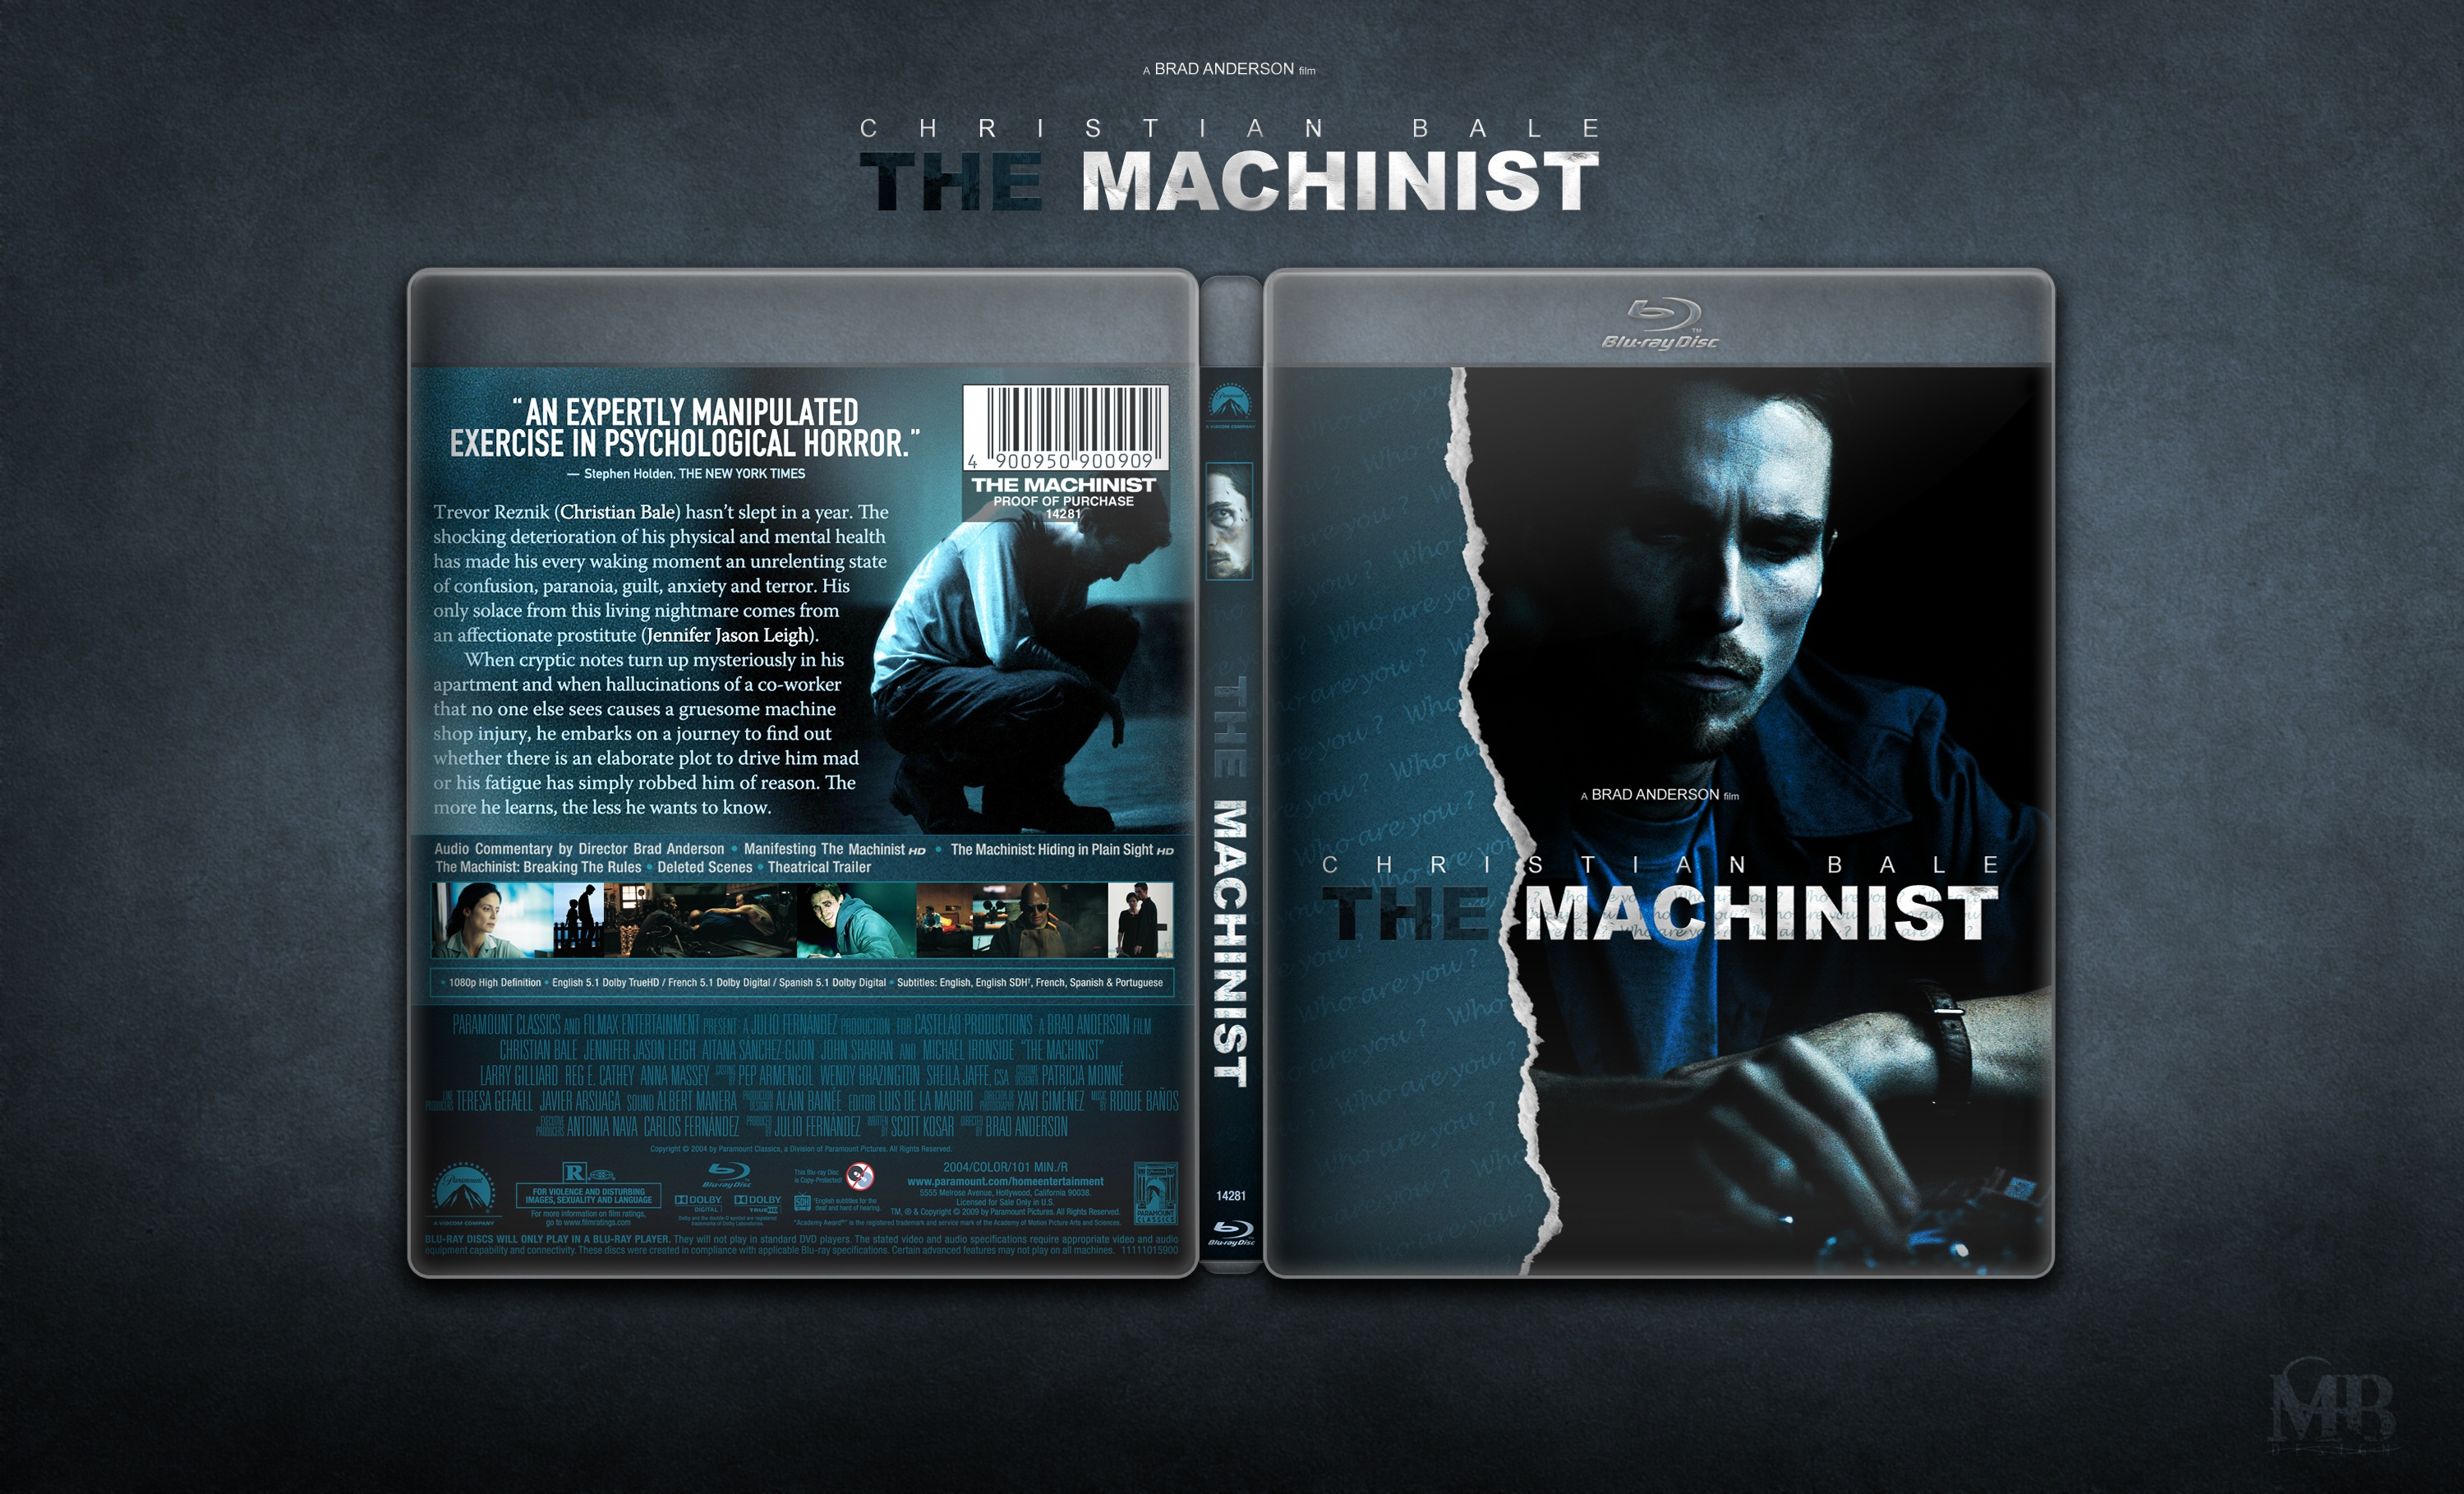 The Machinist box cover